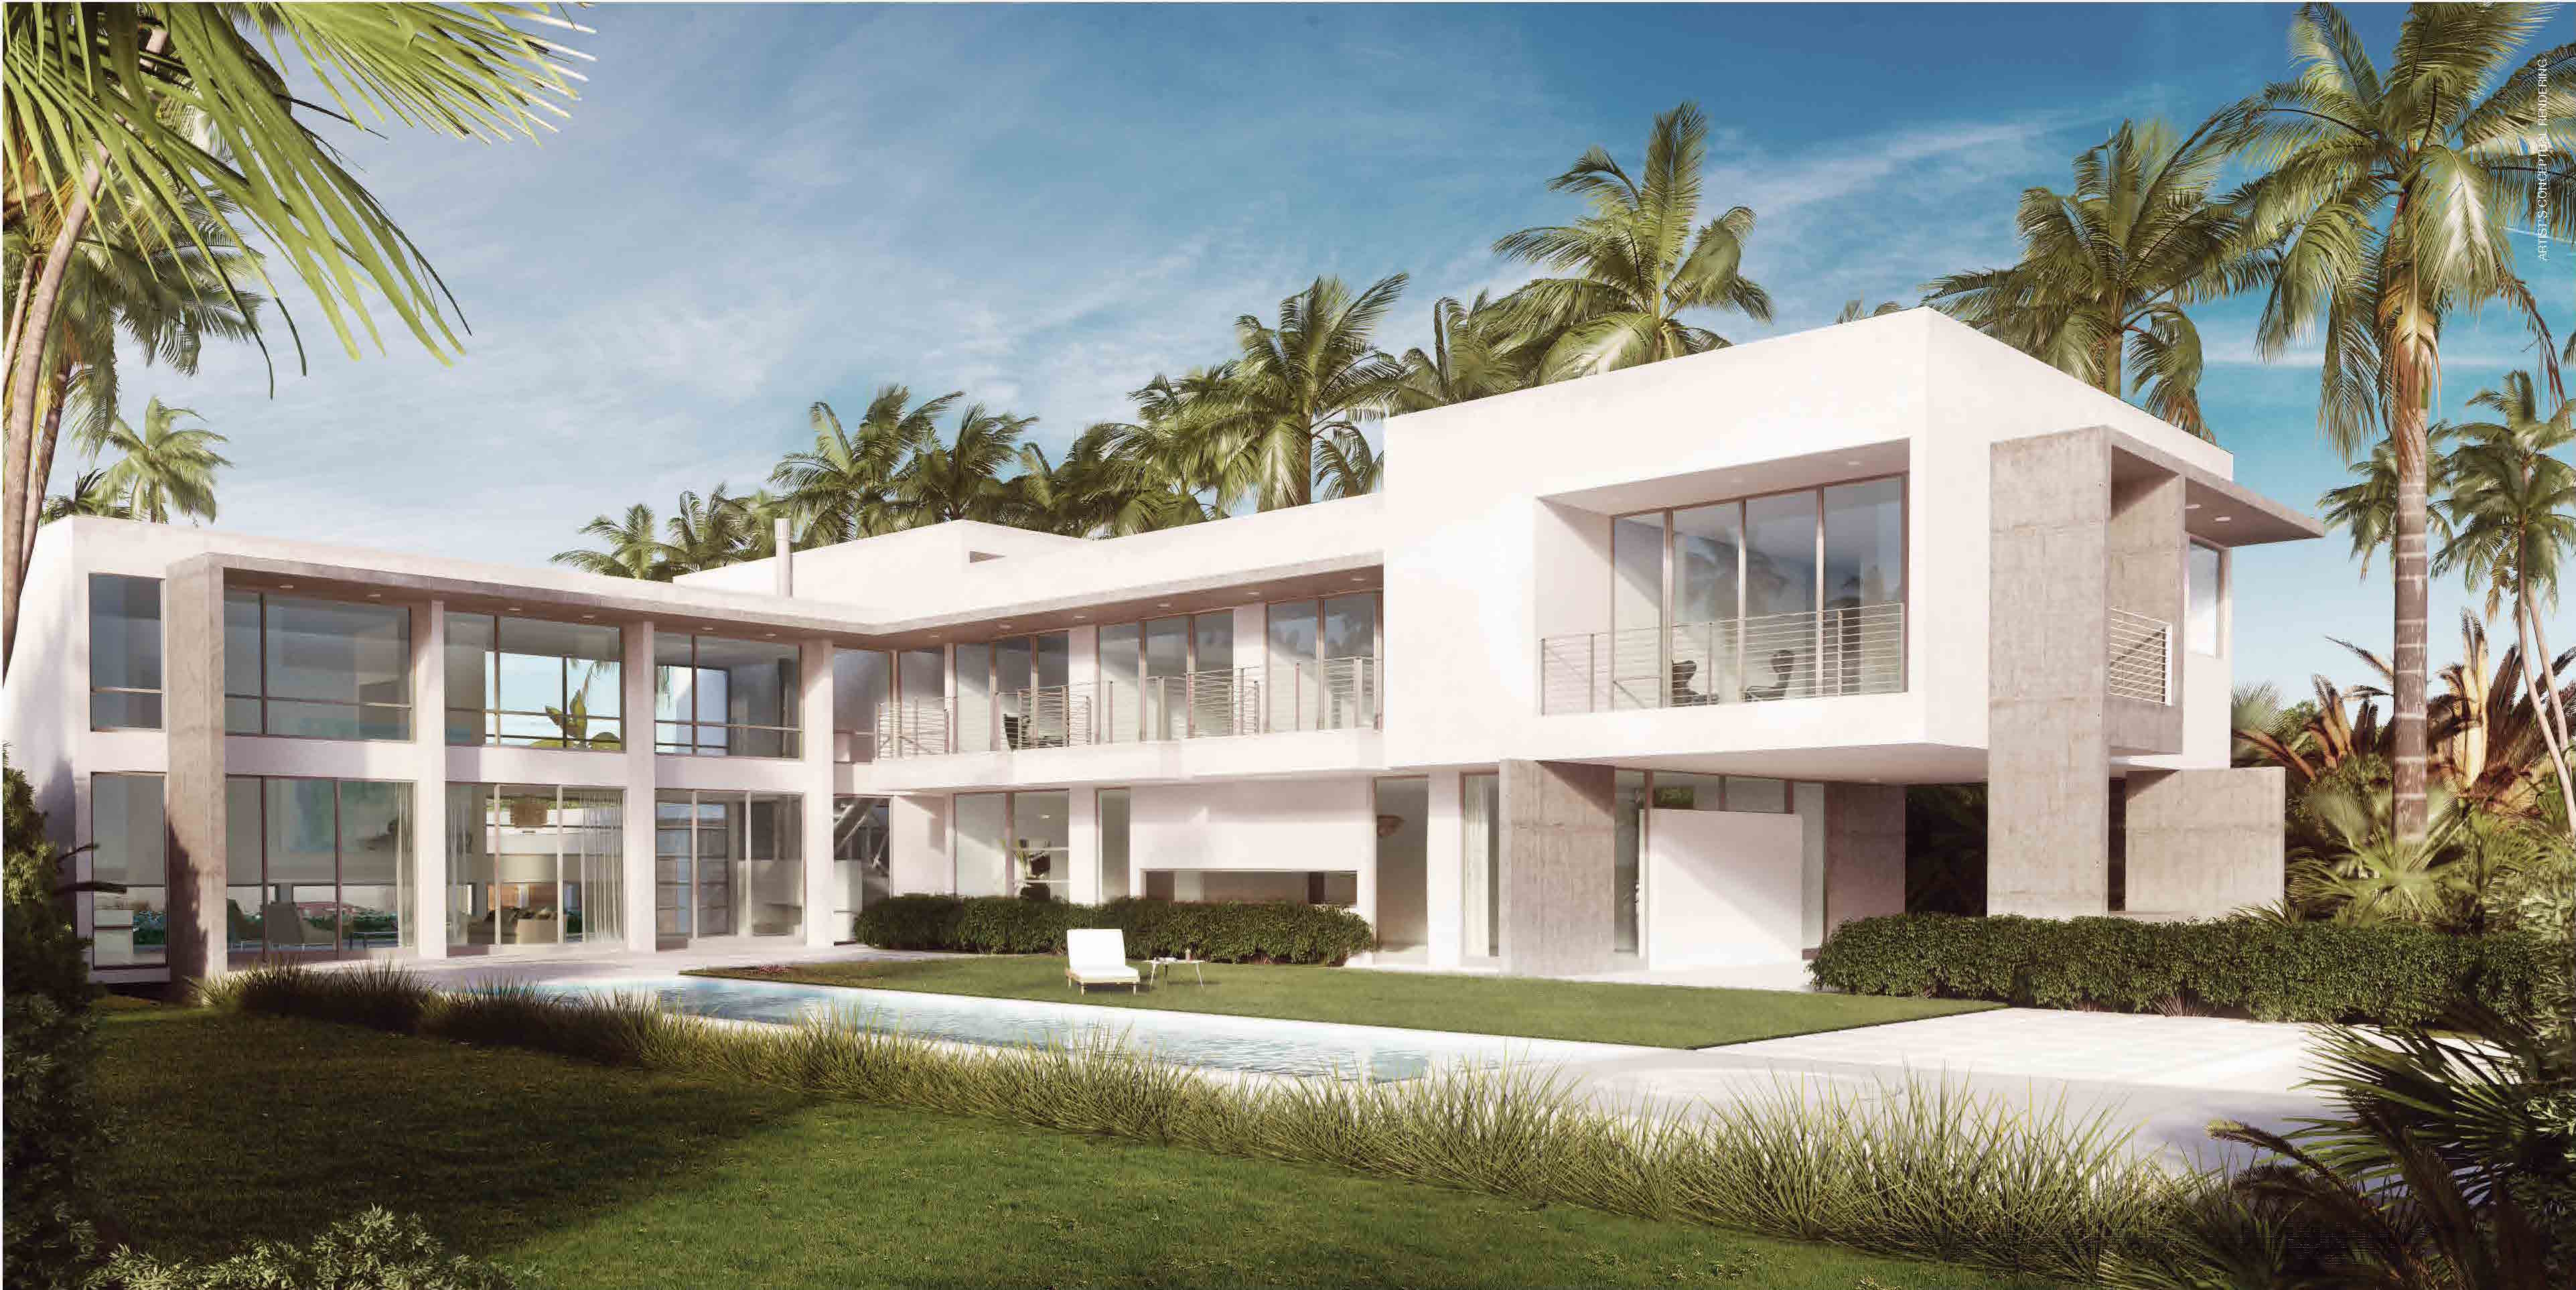 Botaniko weston ultra modern luxury in weston florida for Modern florida homes